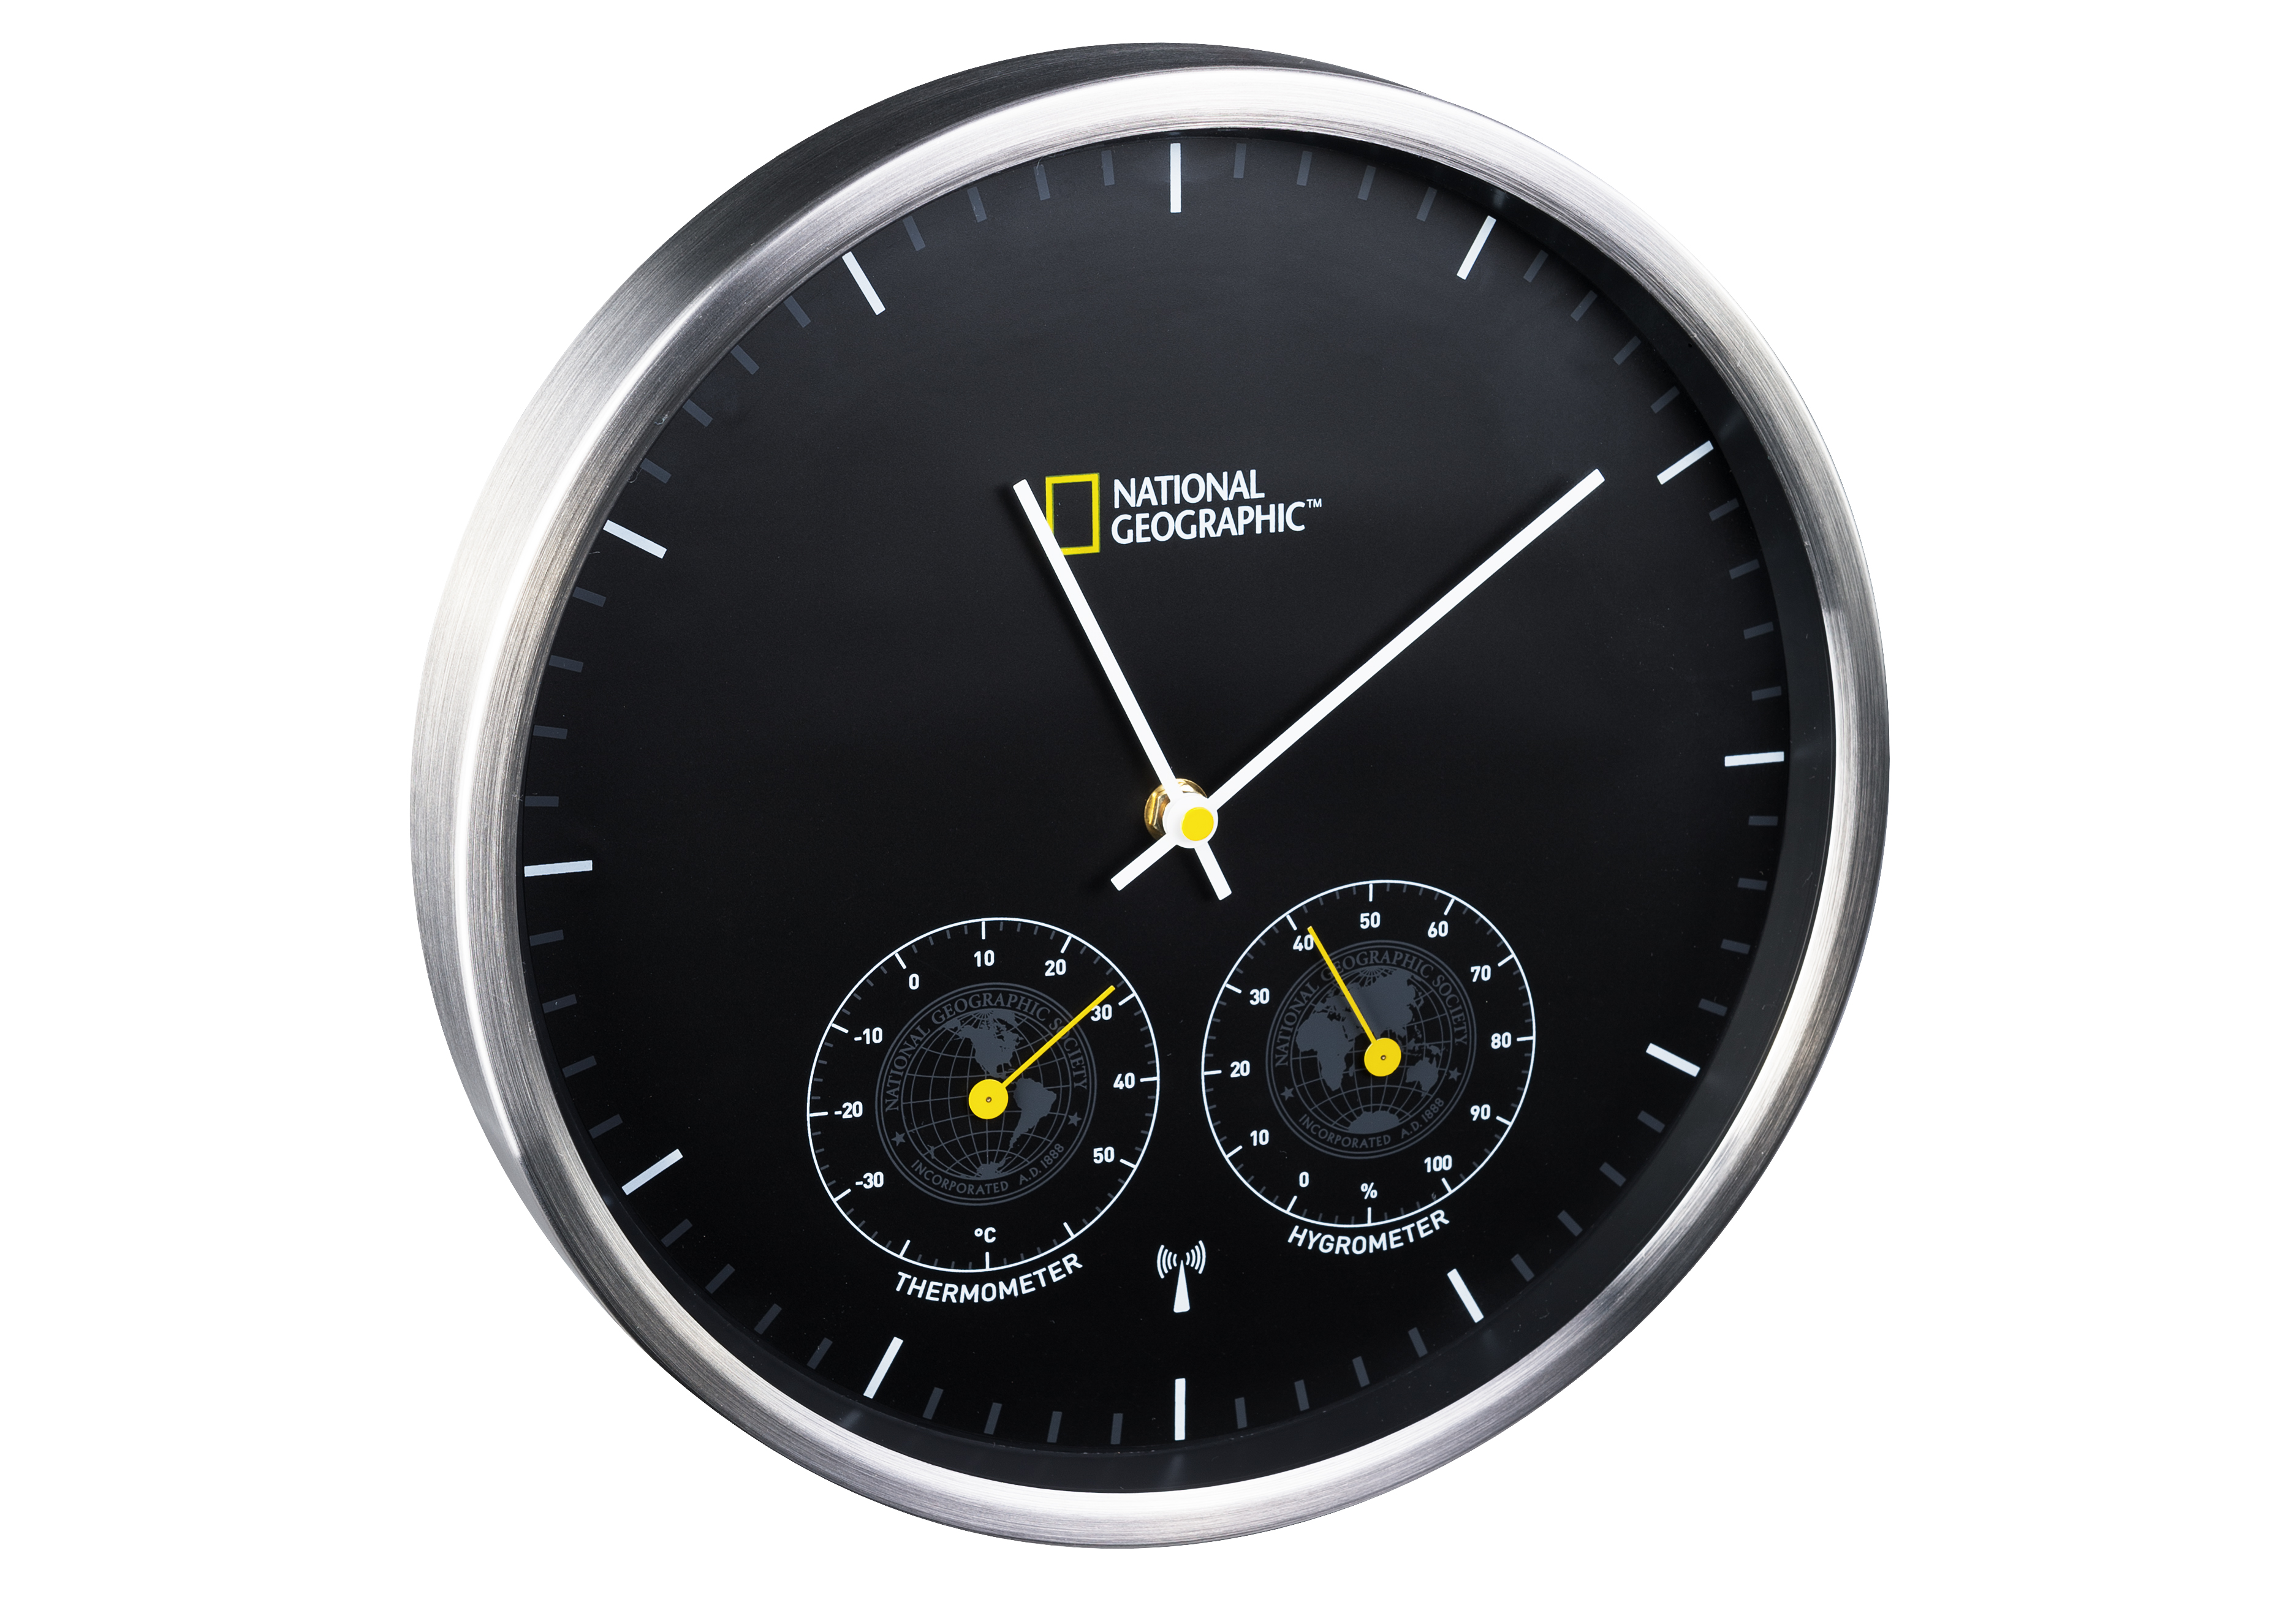 national geographic horloge radio pilot e murale avec thermo hygrom tre acheter en ligne. Black Bedroom Furniture Sets. Home Design Ideas